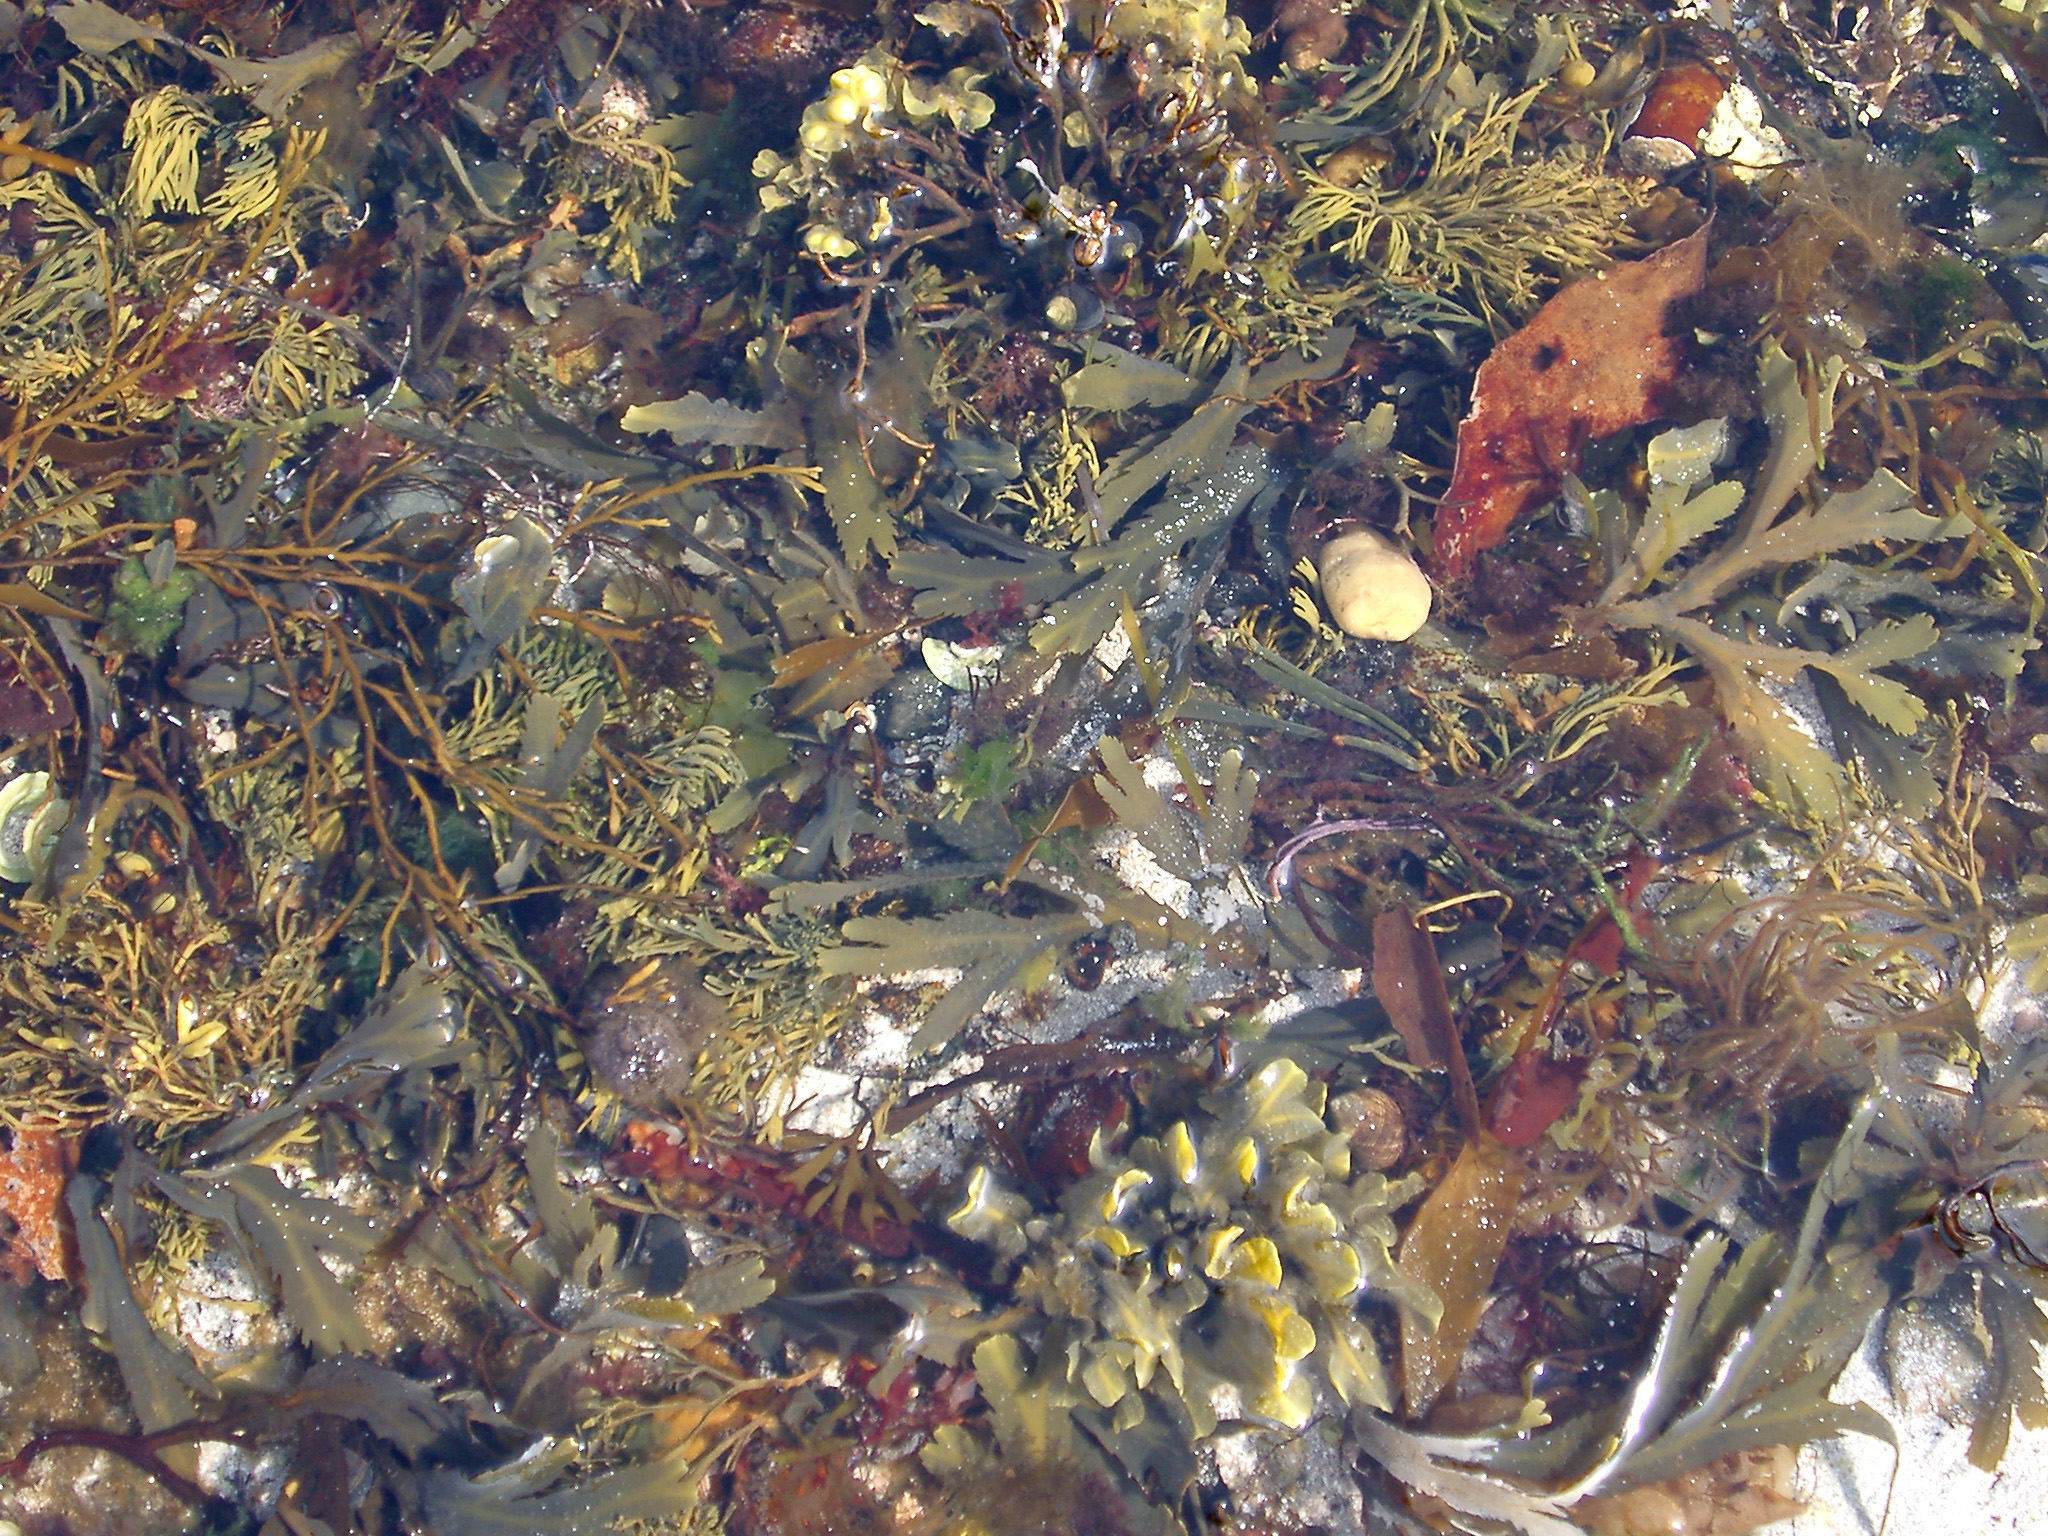 Rock pool with colorful assorted seaweed and seashells in the intertidal zone on the seashore at low tide